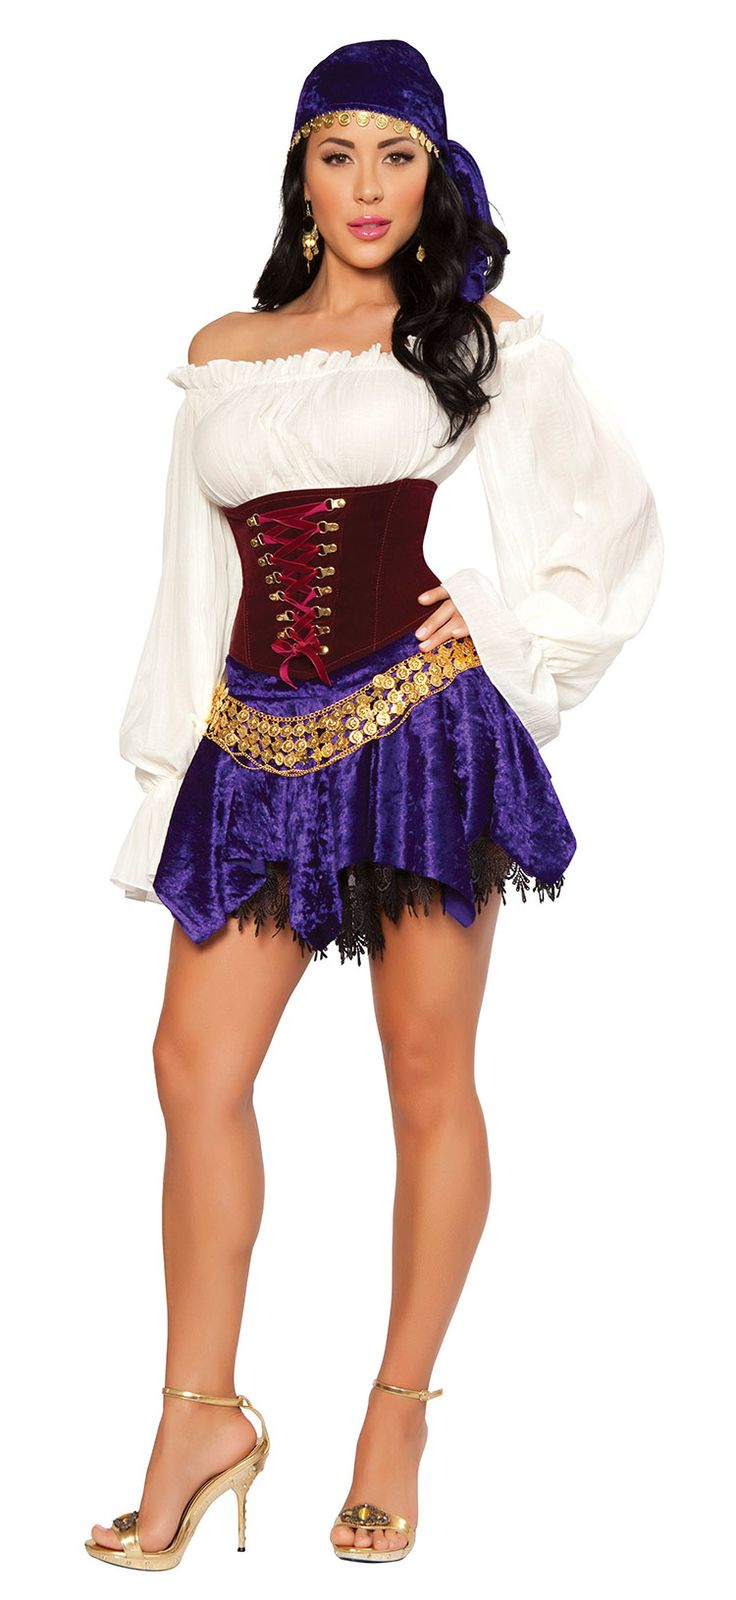 Adult Costumes For Women | Sexy Gypsy Costume - Sexy Costumes